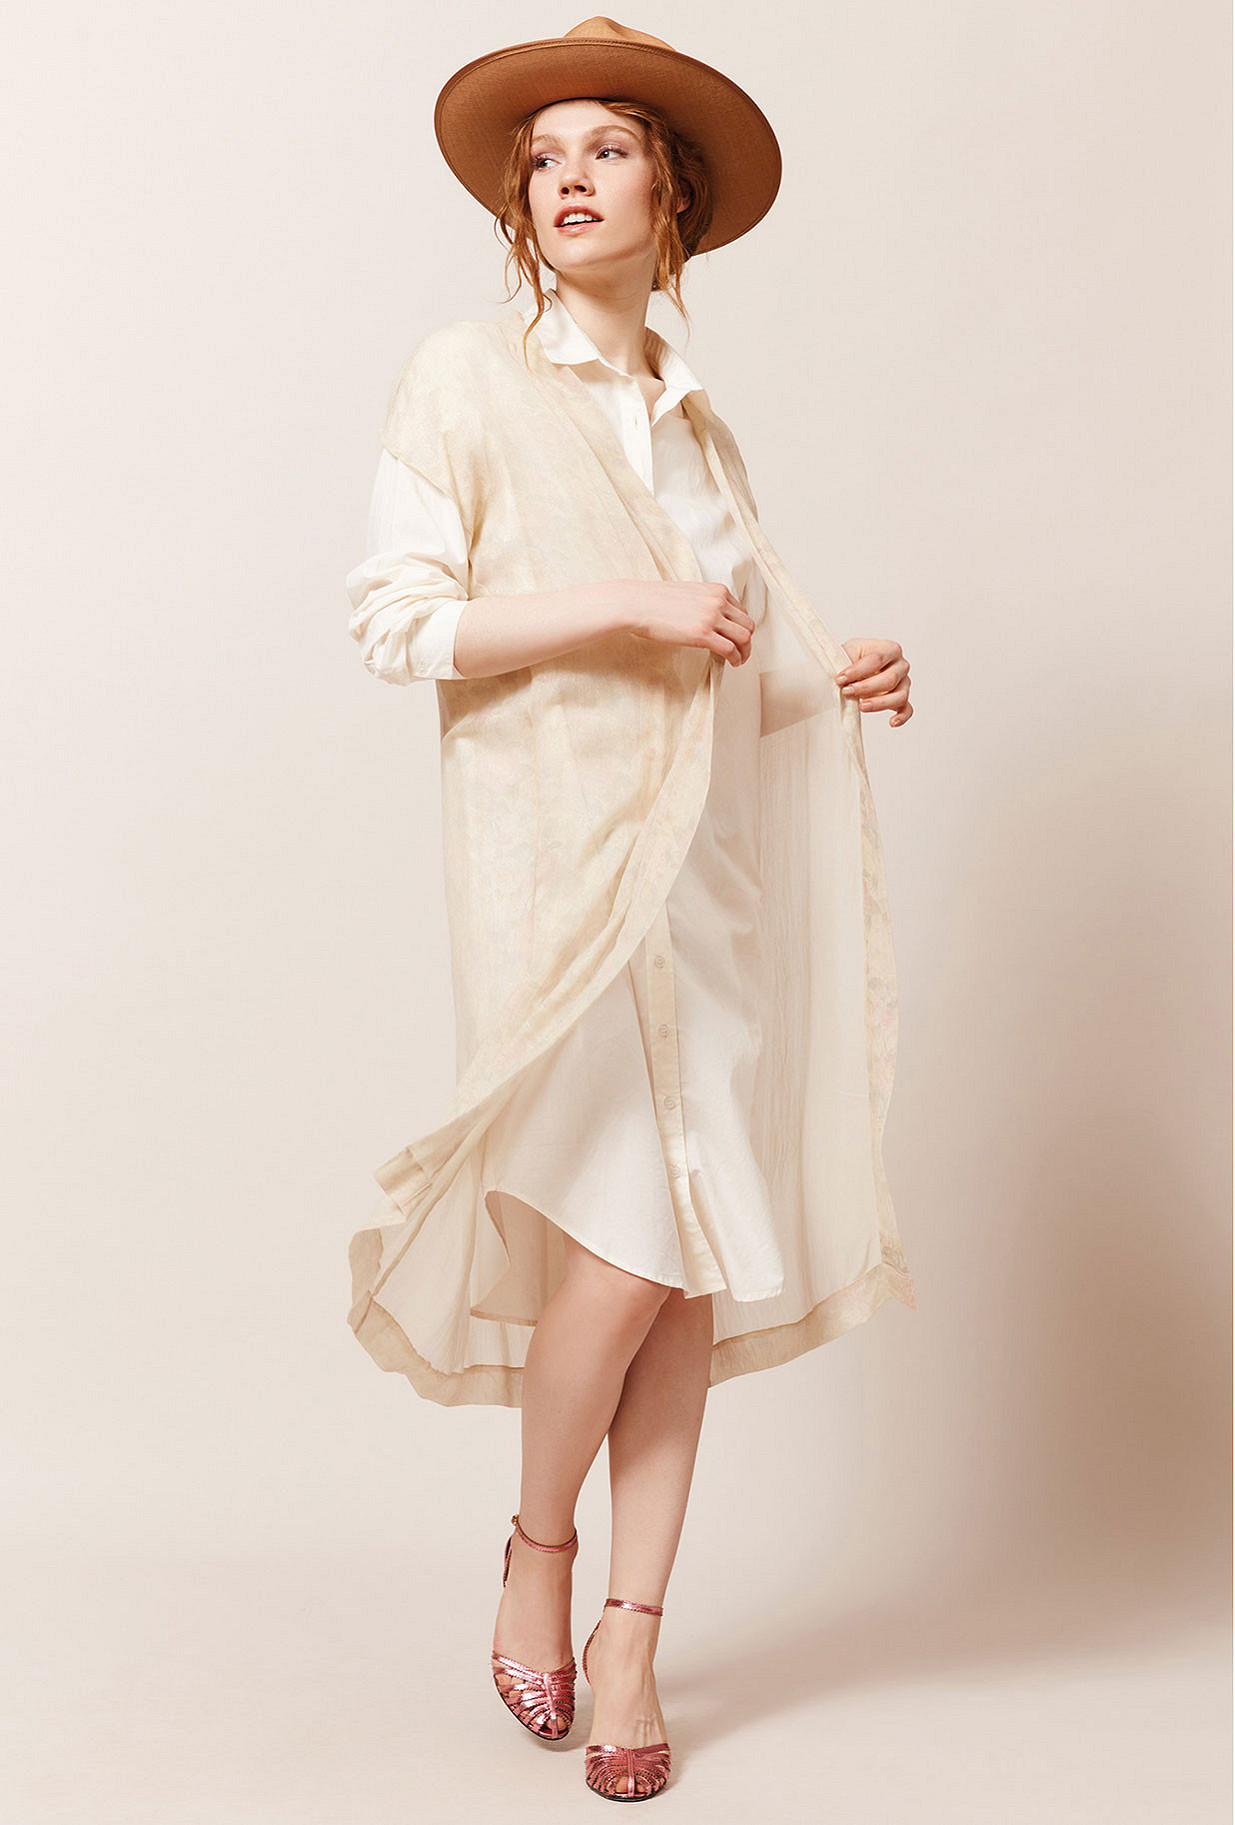 Paris clothes store Kimono  Fluid french designer fashion Paris